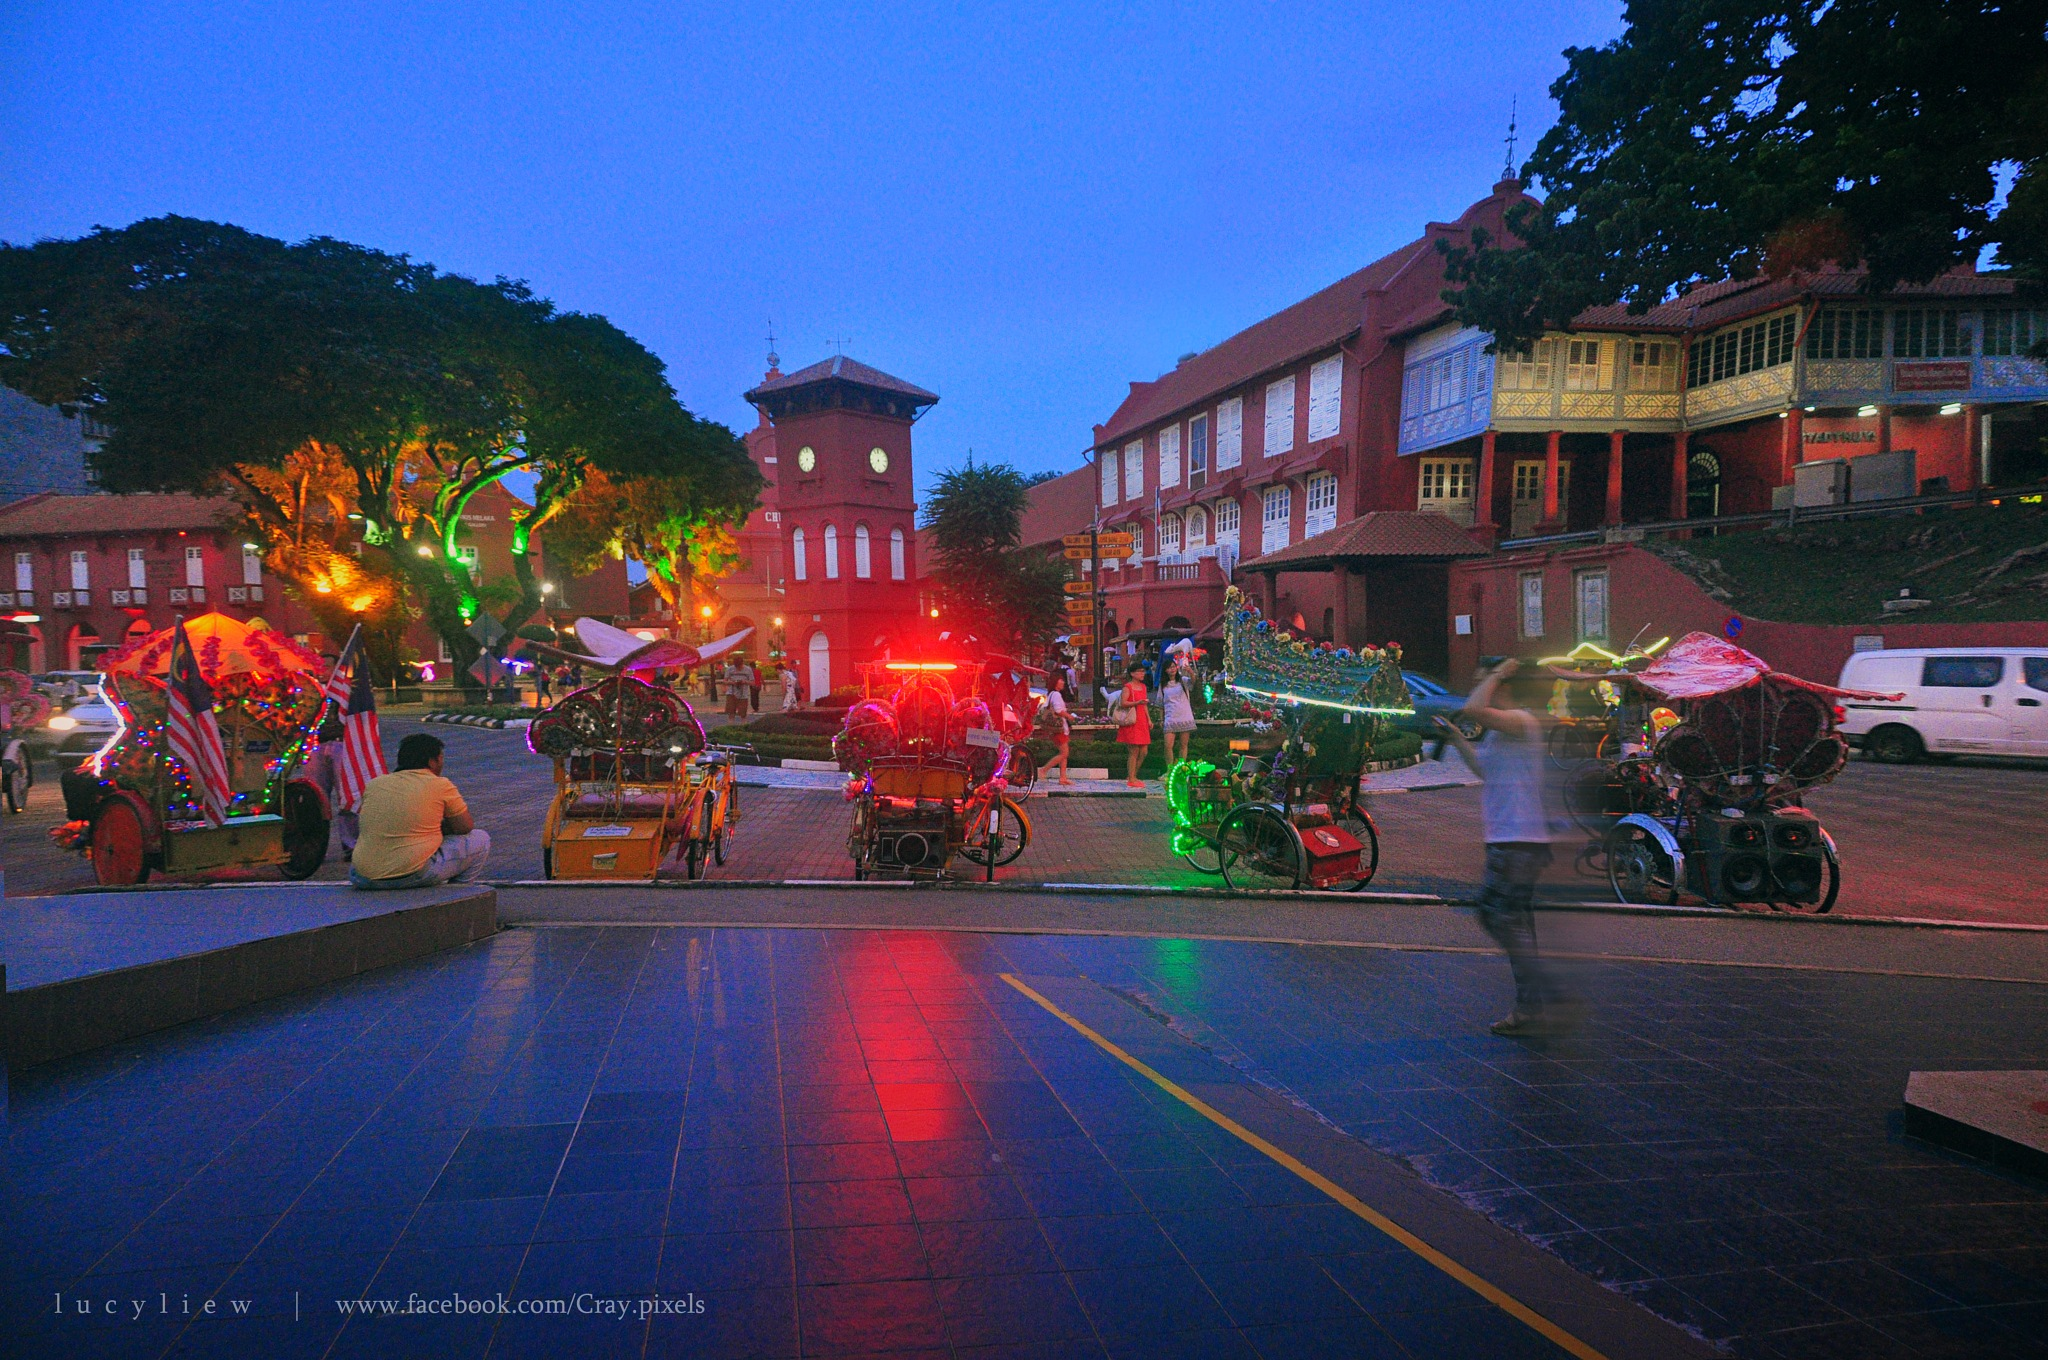 Evening at the Dutch Square by lucyliew